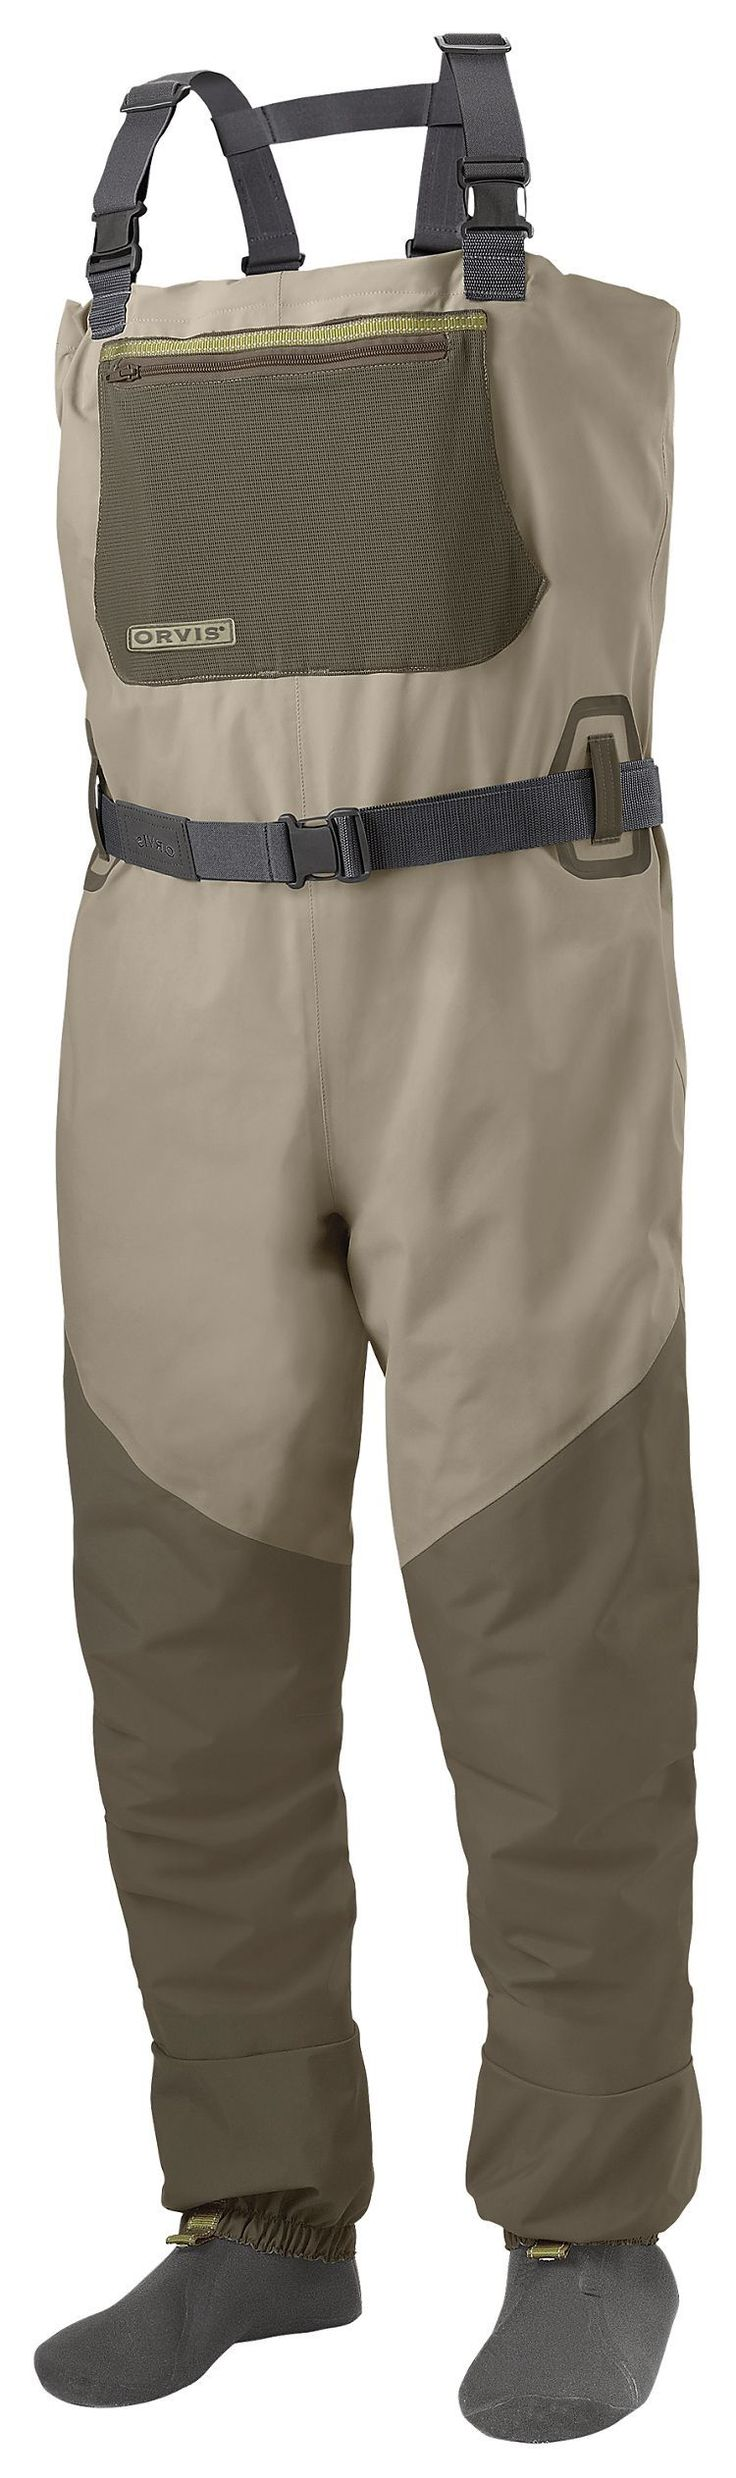 Orvis Encounter Stocking-Foot Waders for Men | Bass Pro Shops: The Best Hunting… #FishingWaders